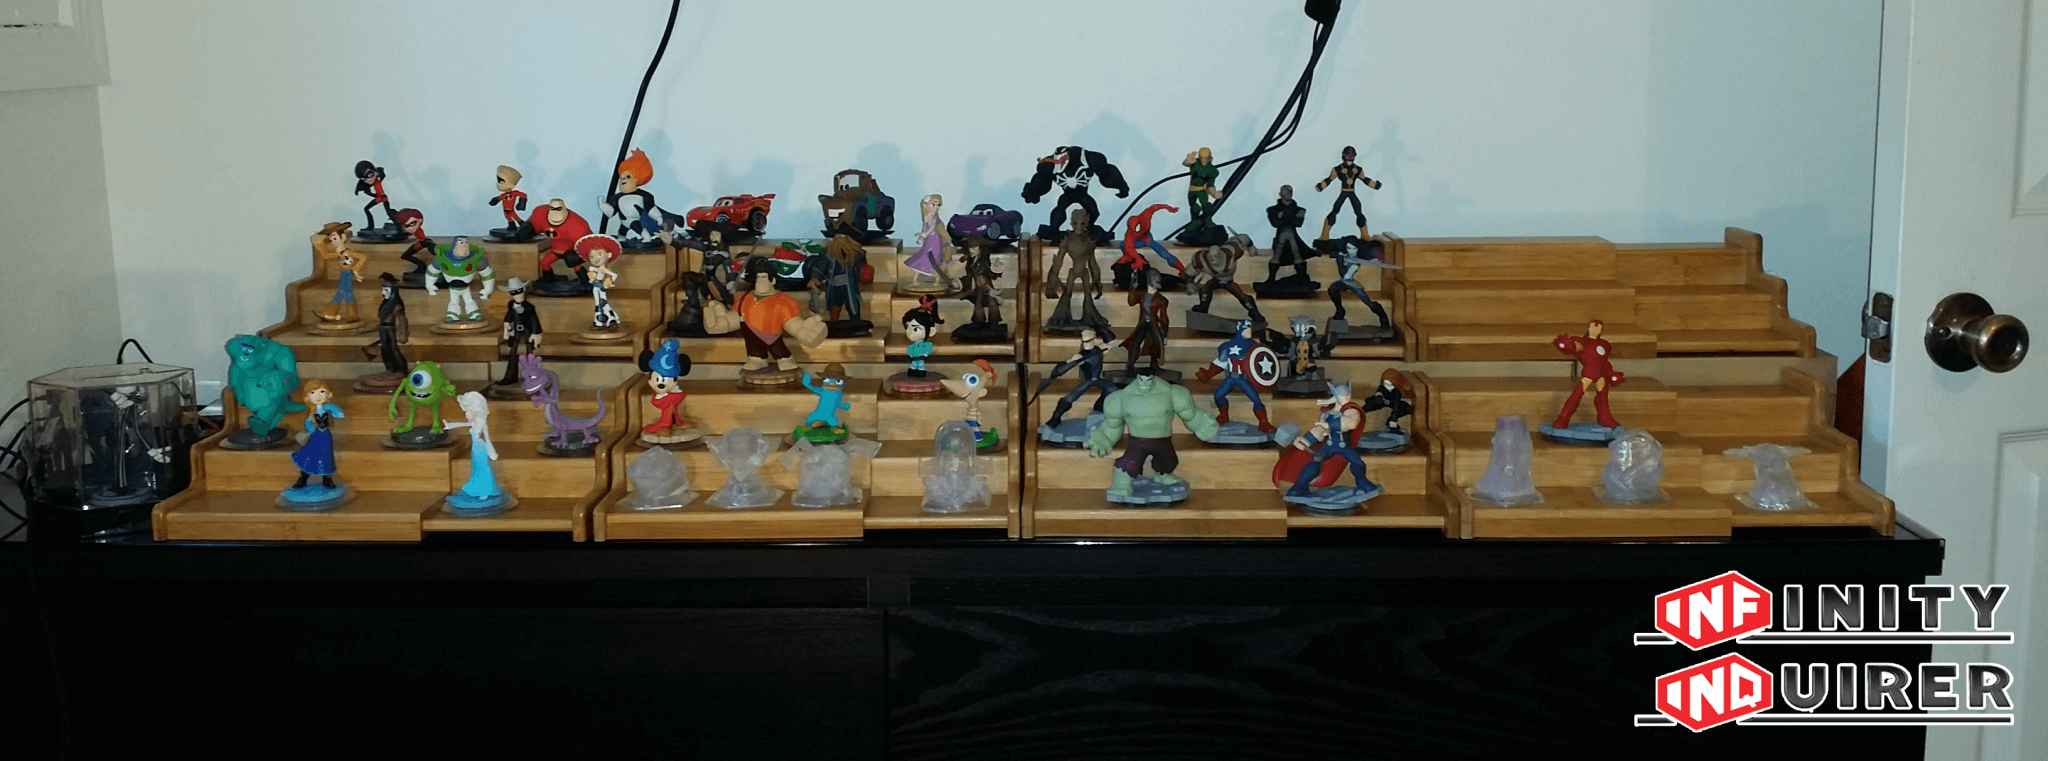 how are you showing your disney infinity collection? – infinity inquirer